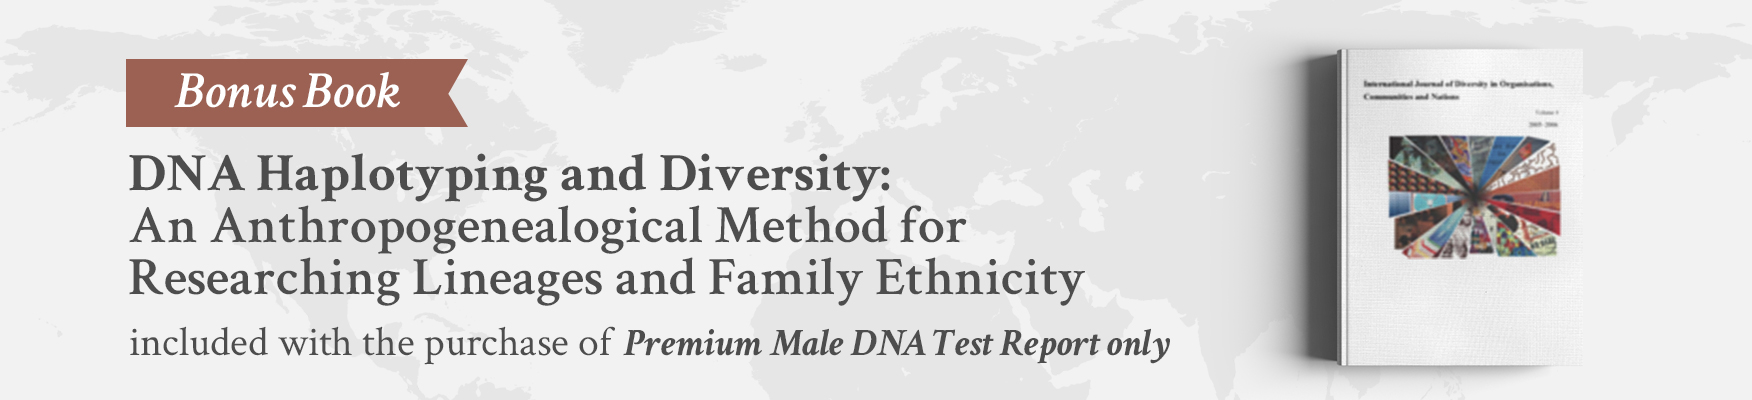 premium male dna test report only